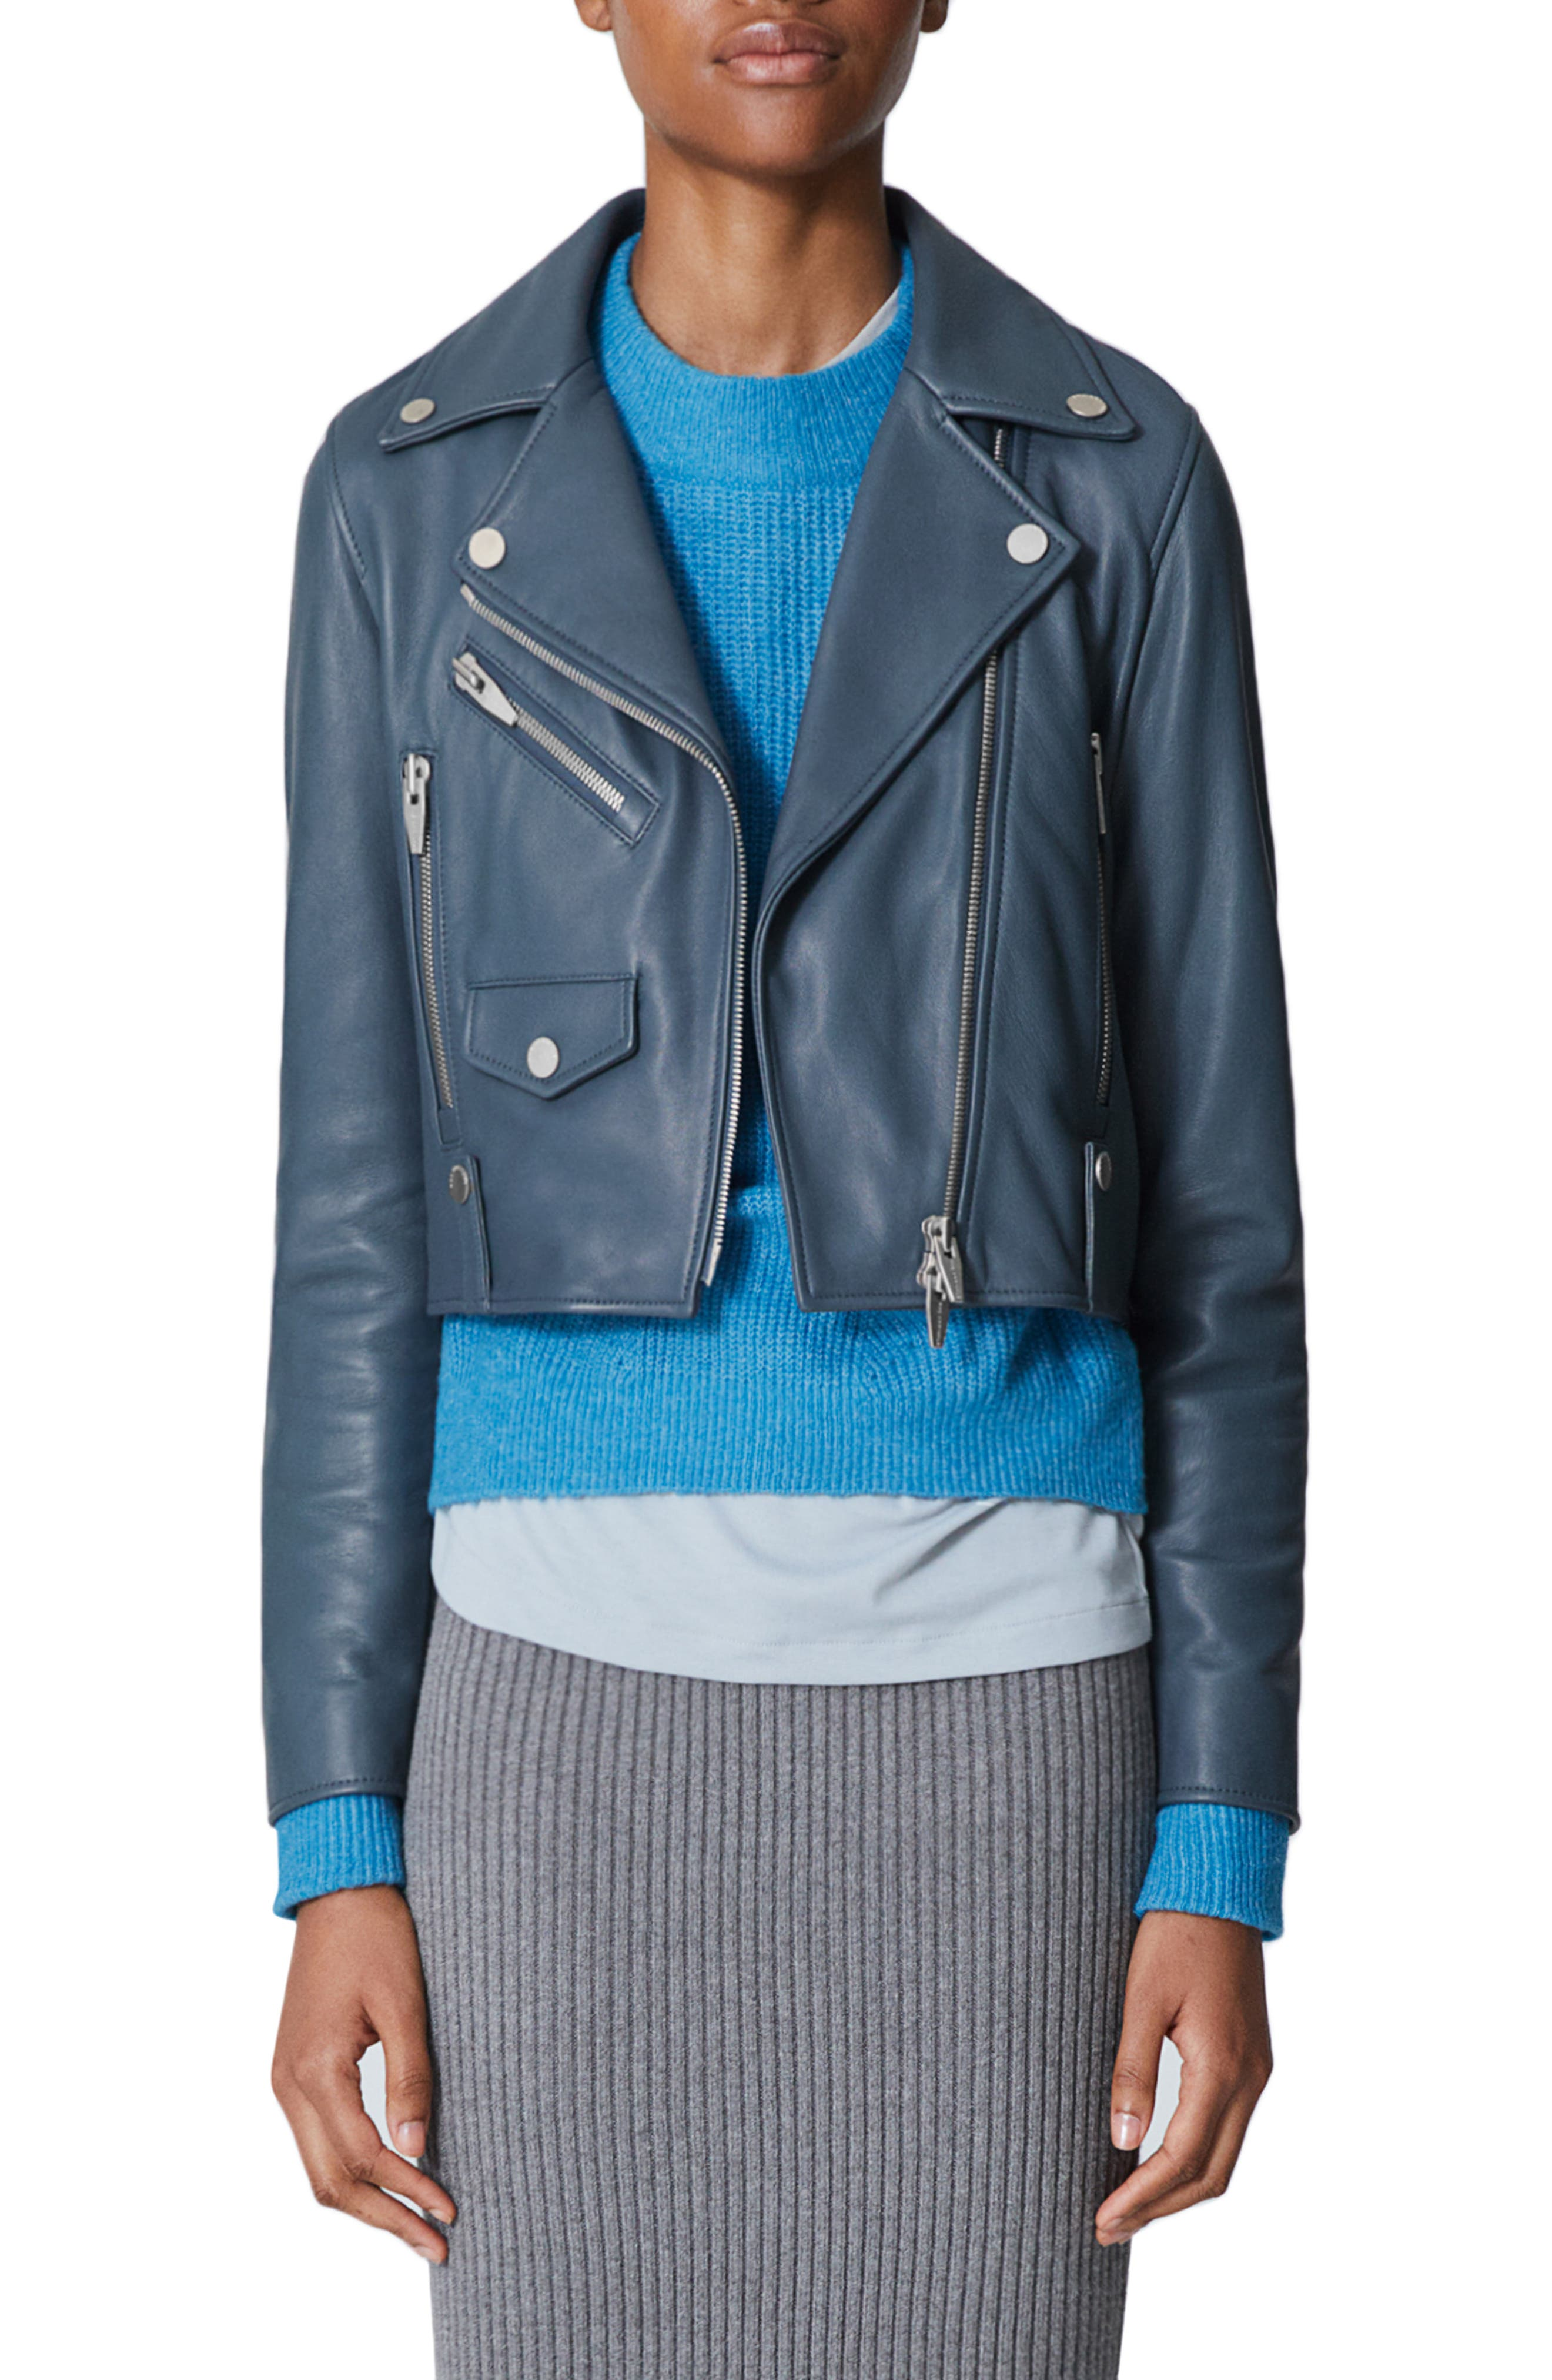 THE ARRIVALS Clo Mini Leather Jacket in Slate